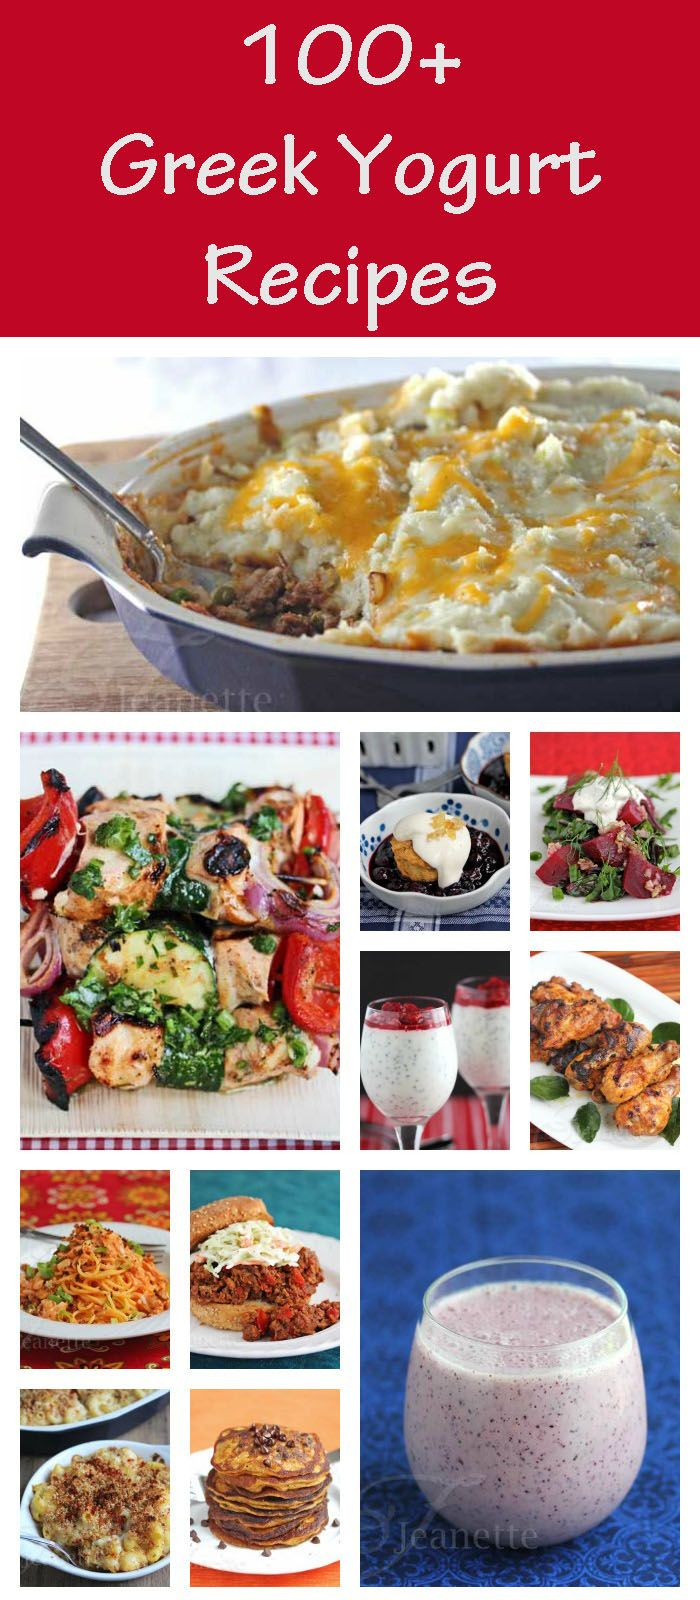 100+ Greek Yogurt Recipes - How To Use Greek Yogurt - Jeanette's Healthy Living